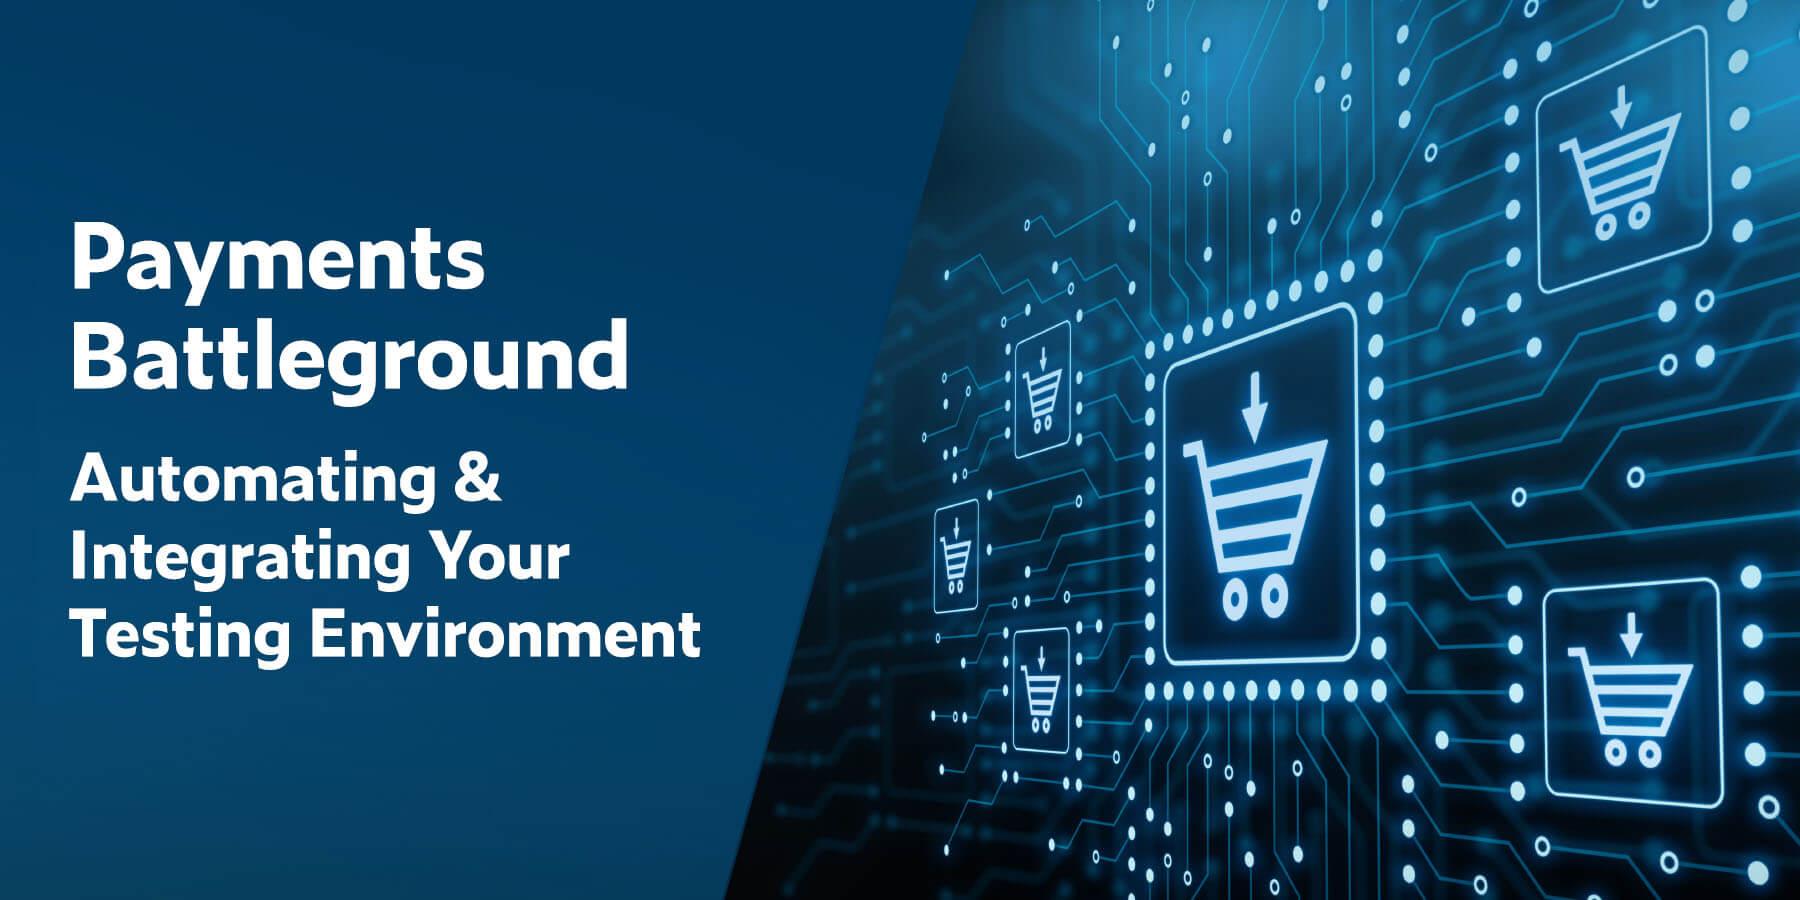 Payments Battleground: Automating & Integrating Your Testing Environment